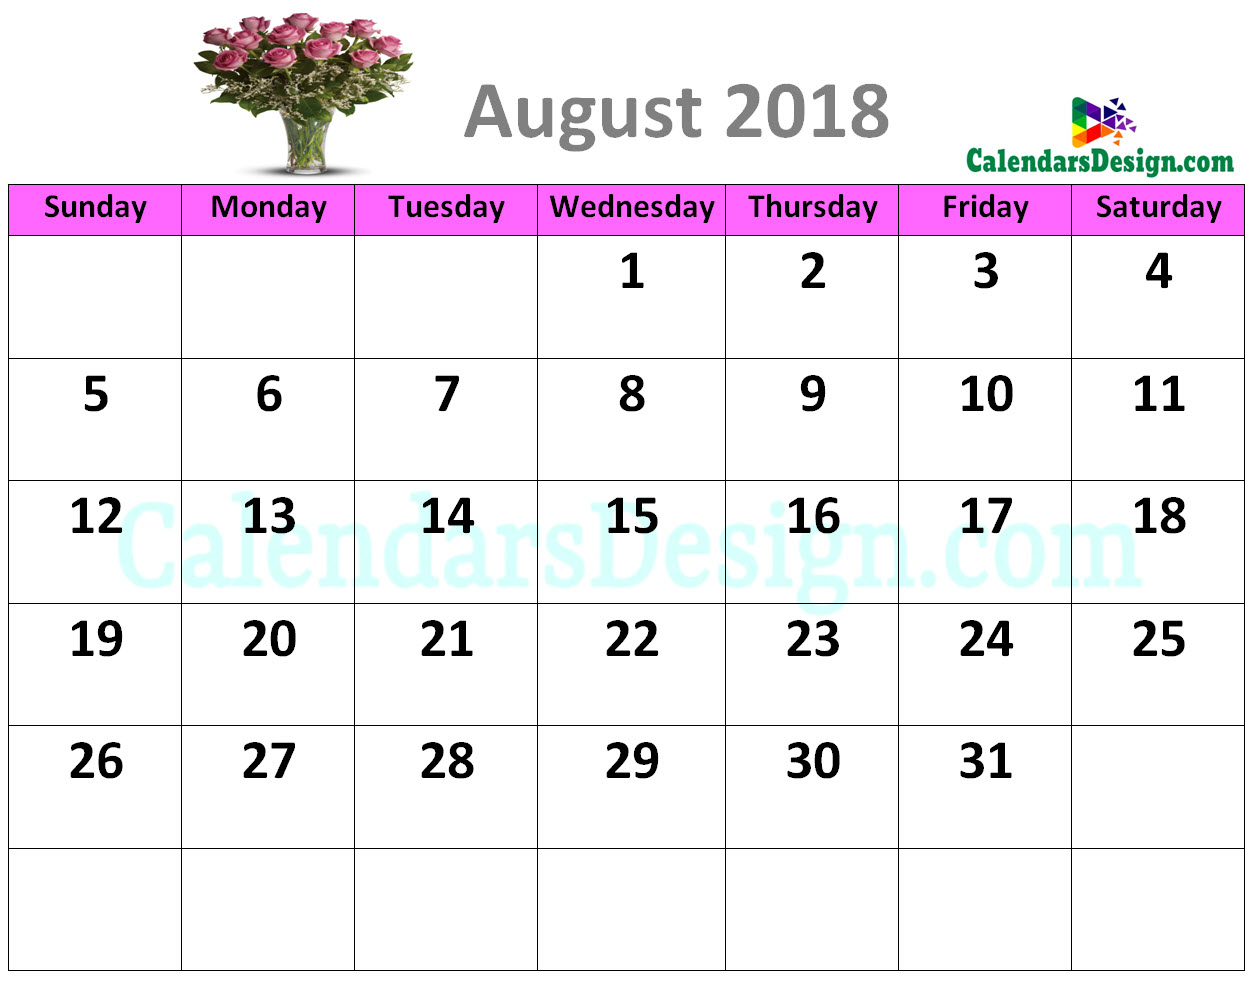 Decorative August 2018 Cute Calendar